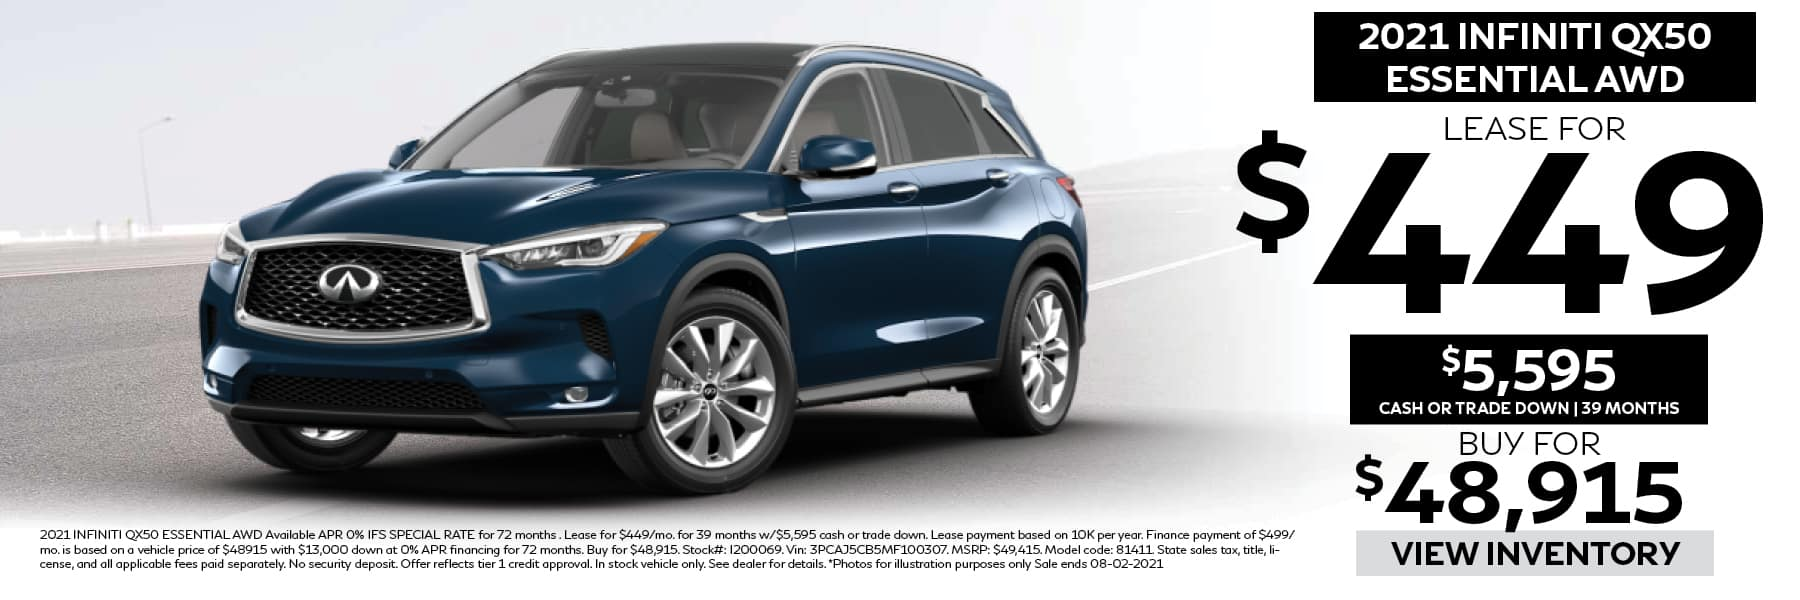 2021 INFINITIQX50 Essential Lease for $449 per Month with $5,595 Cash or Trade Down for 39 Months